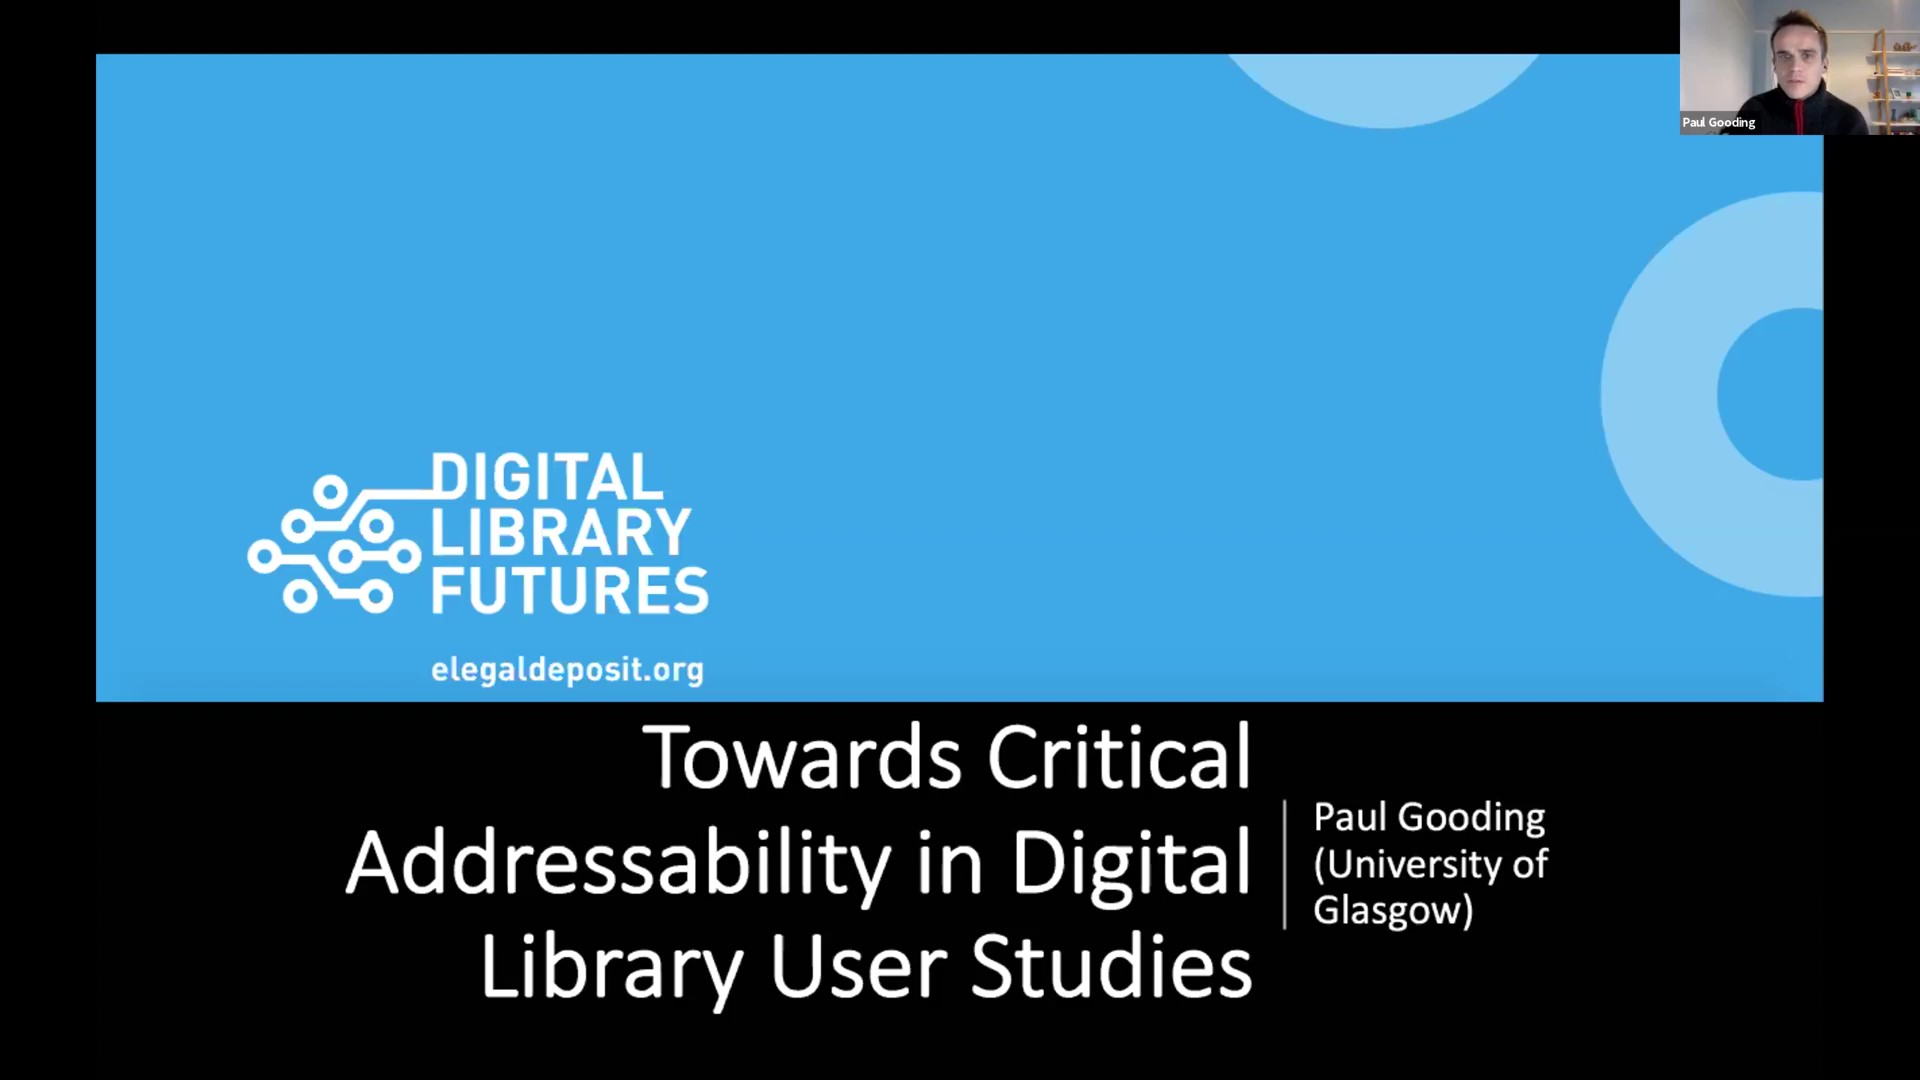 Workshop 1 – Paul Gooding – Towards Critical Addressability in Digital Library User Studies